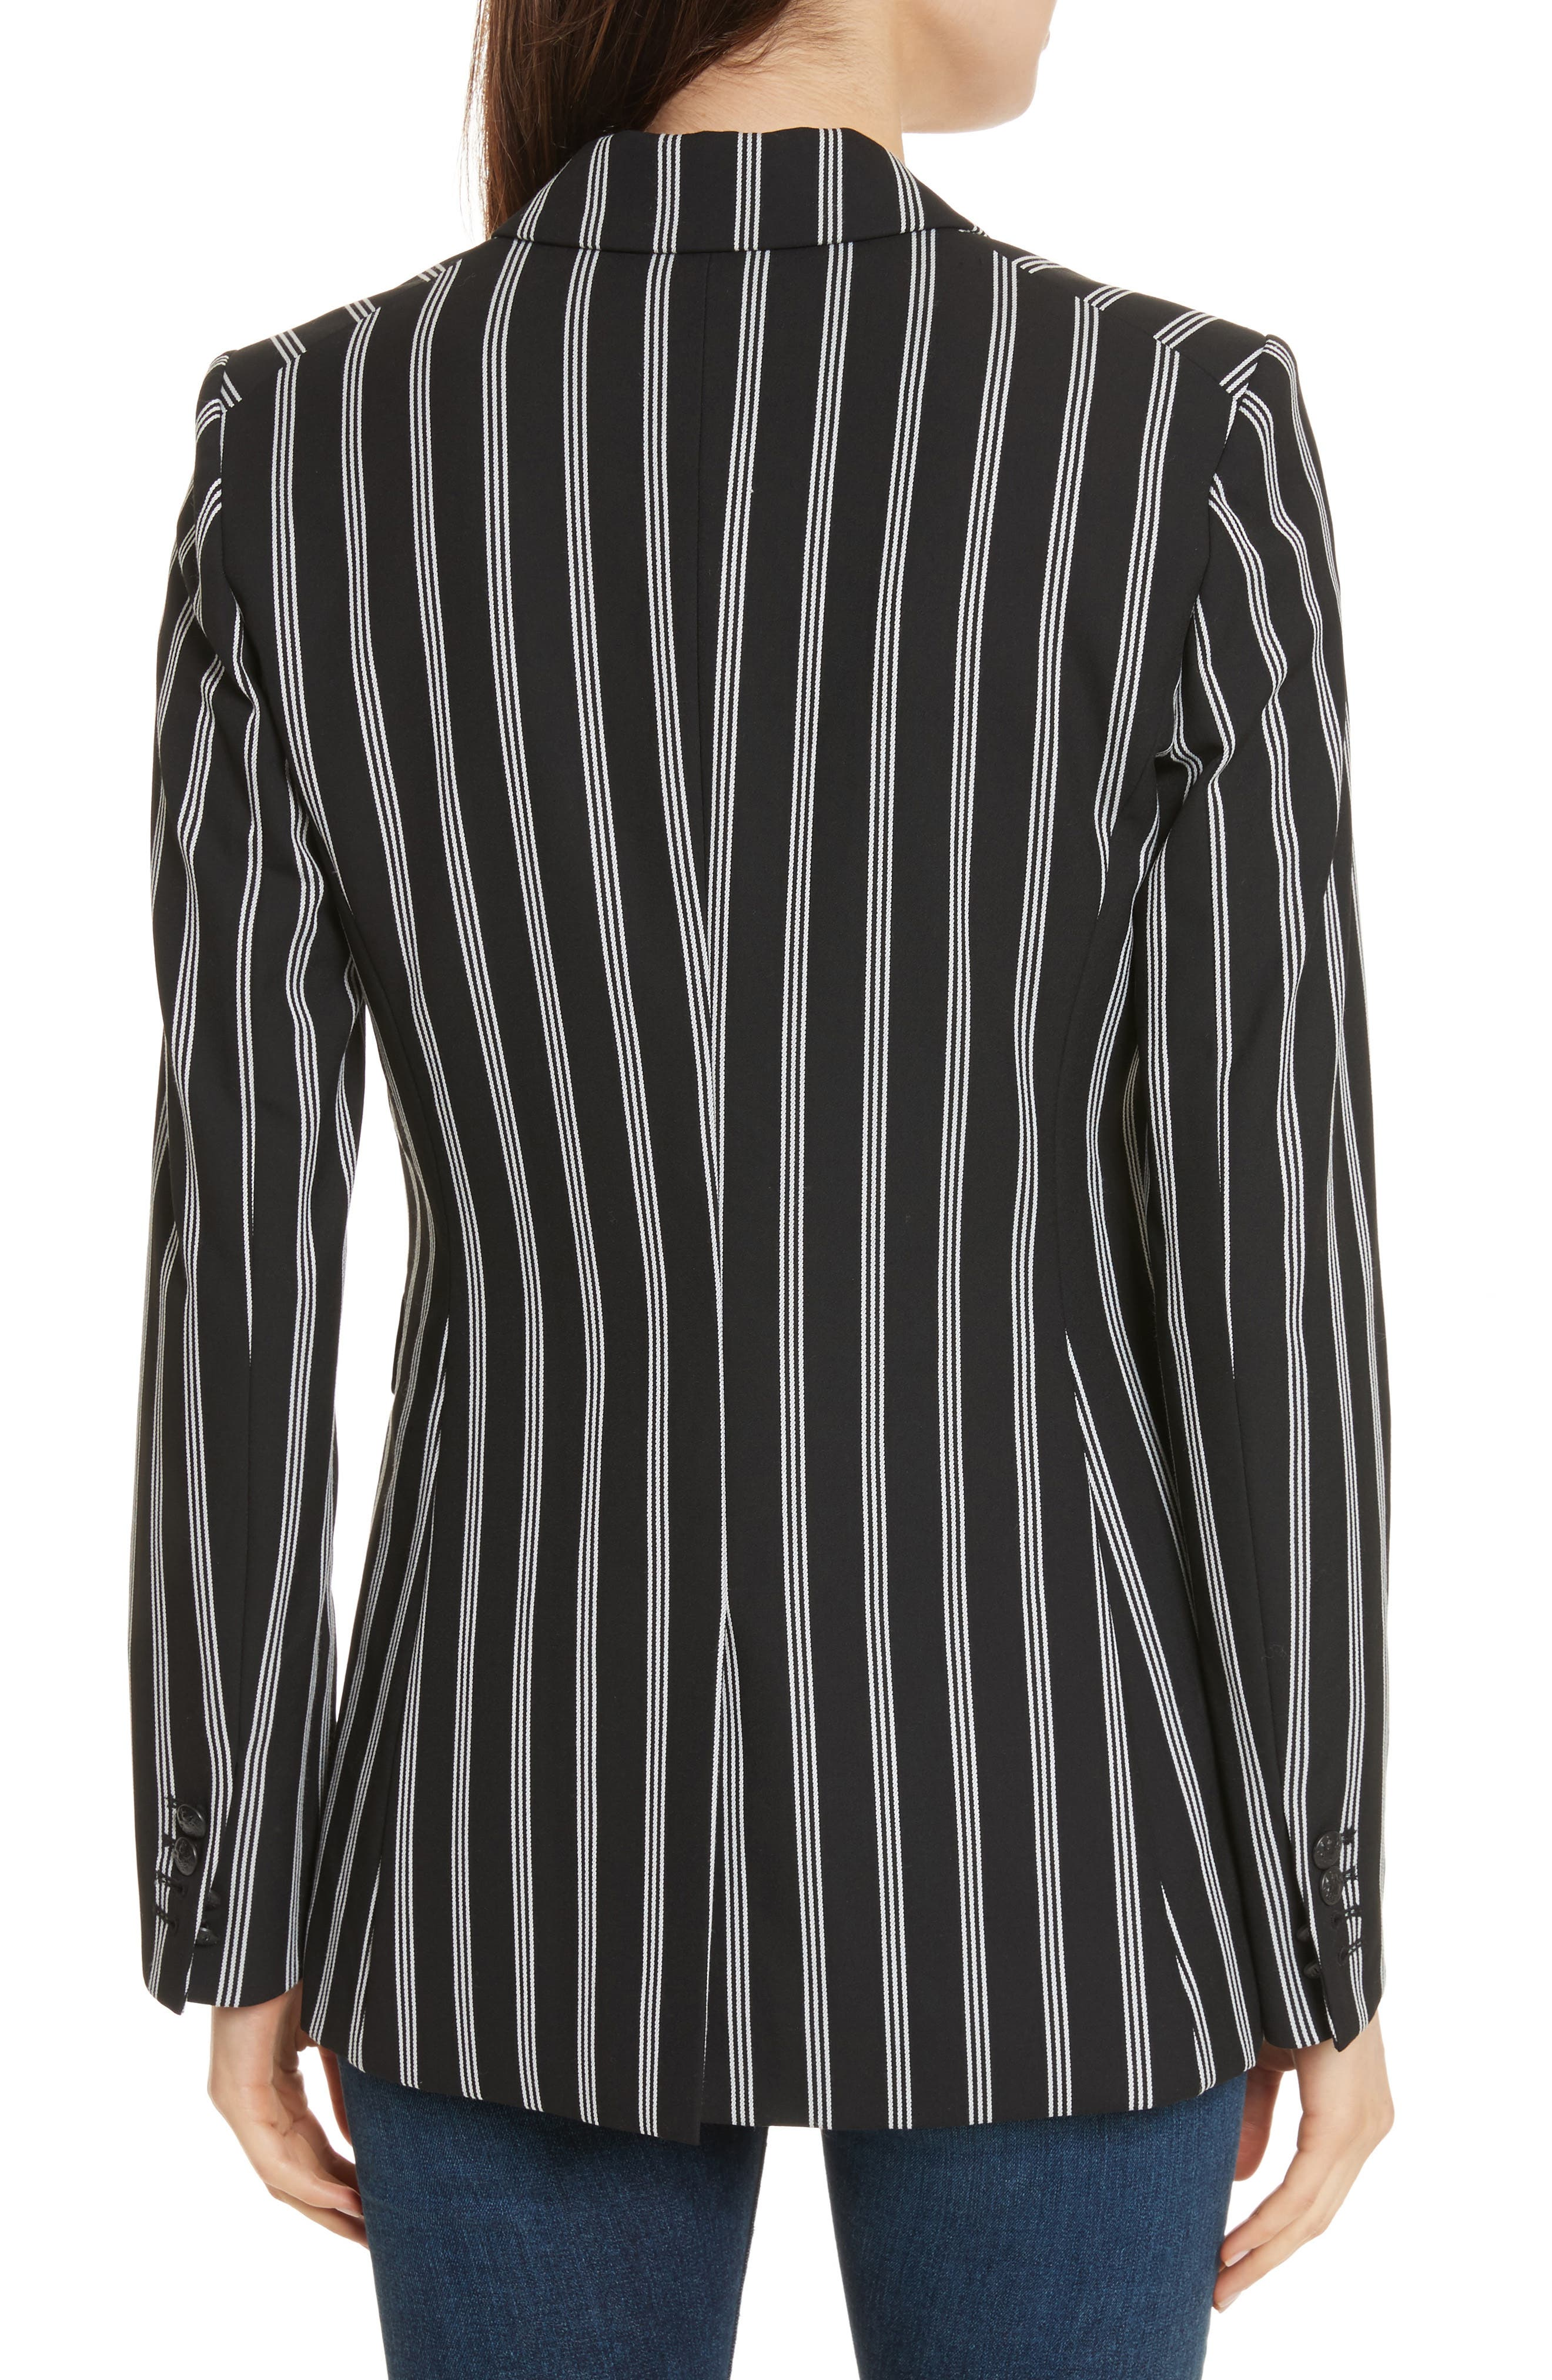 Petra Stripe Jacket,                             Alternate thumbnail 2, color,                             007